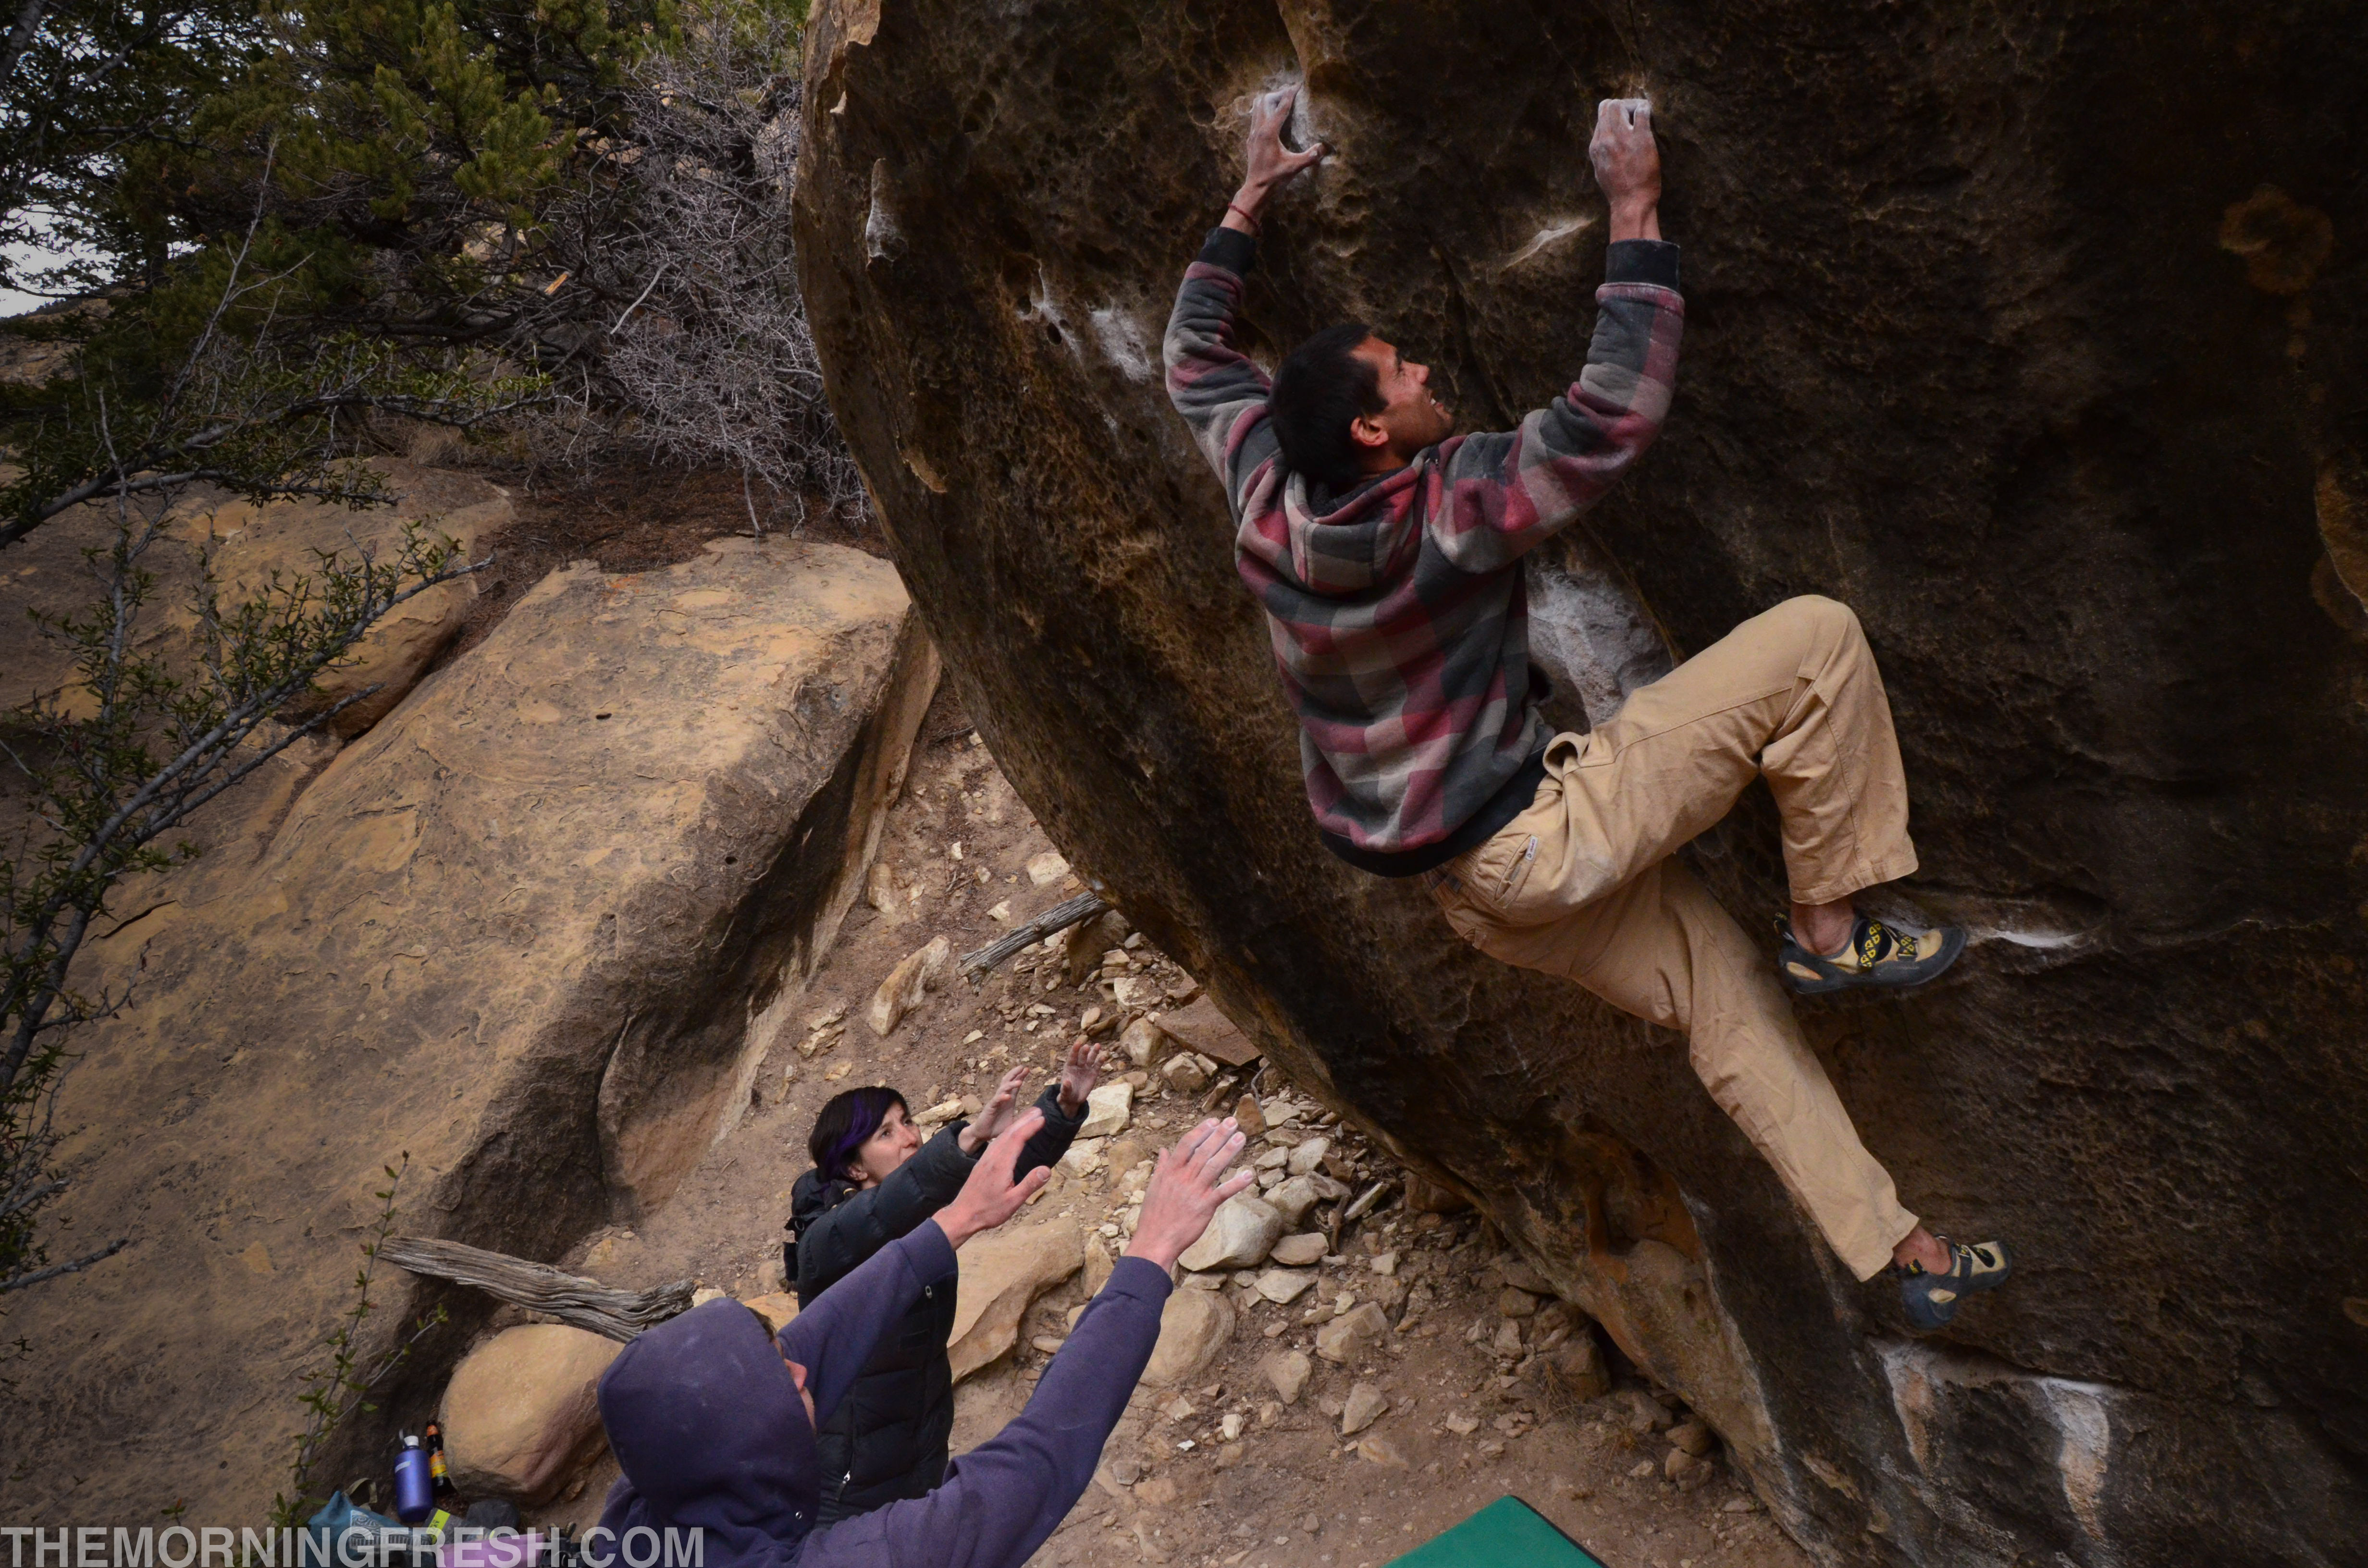 Spenser climbing Save Yourself (V9) in Joe's Valley.